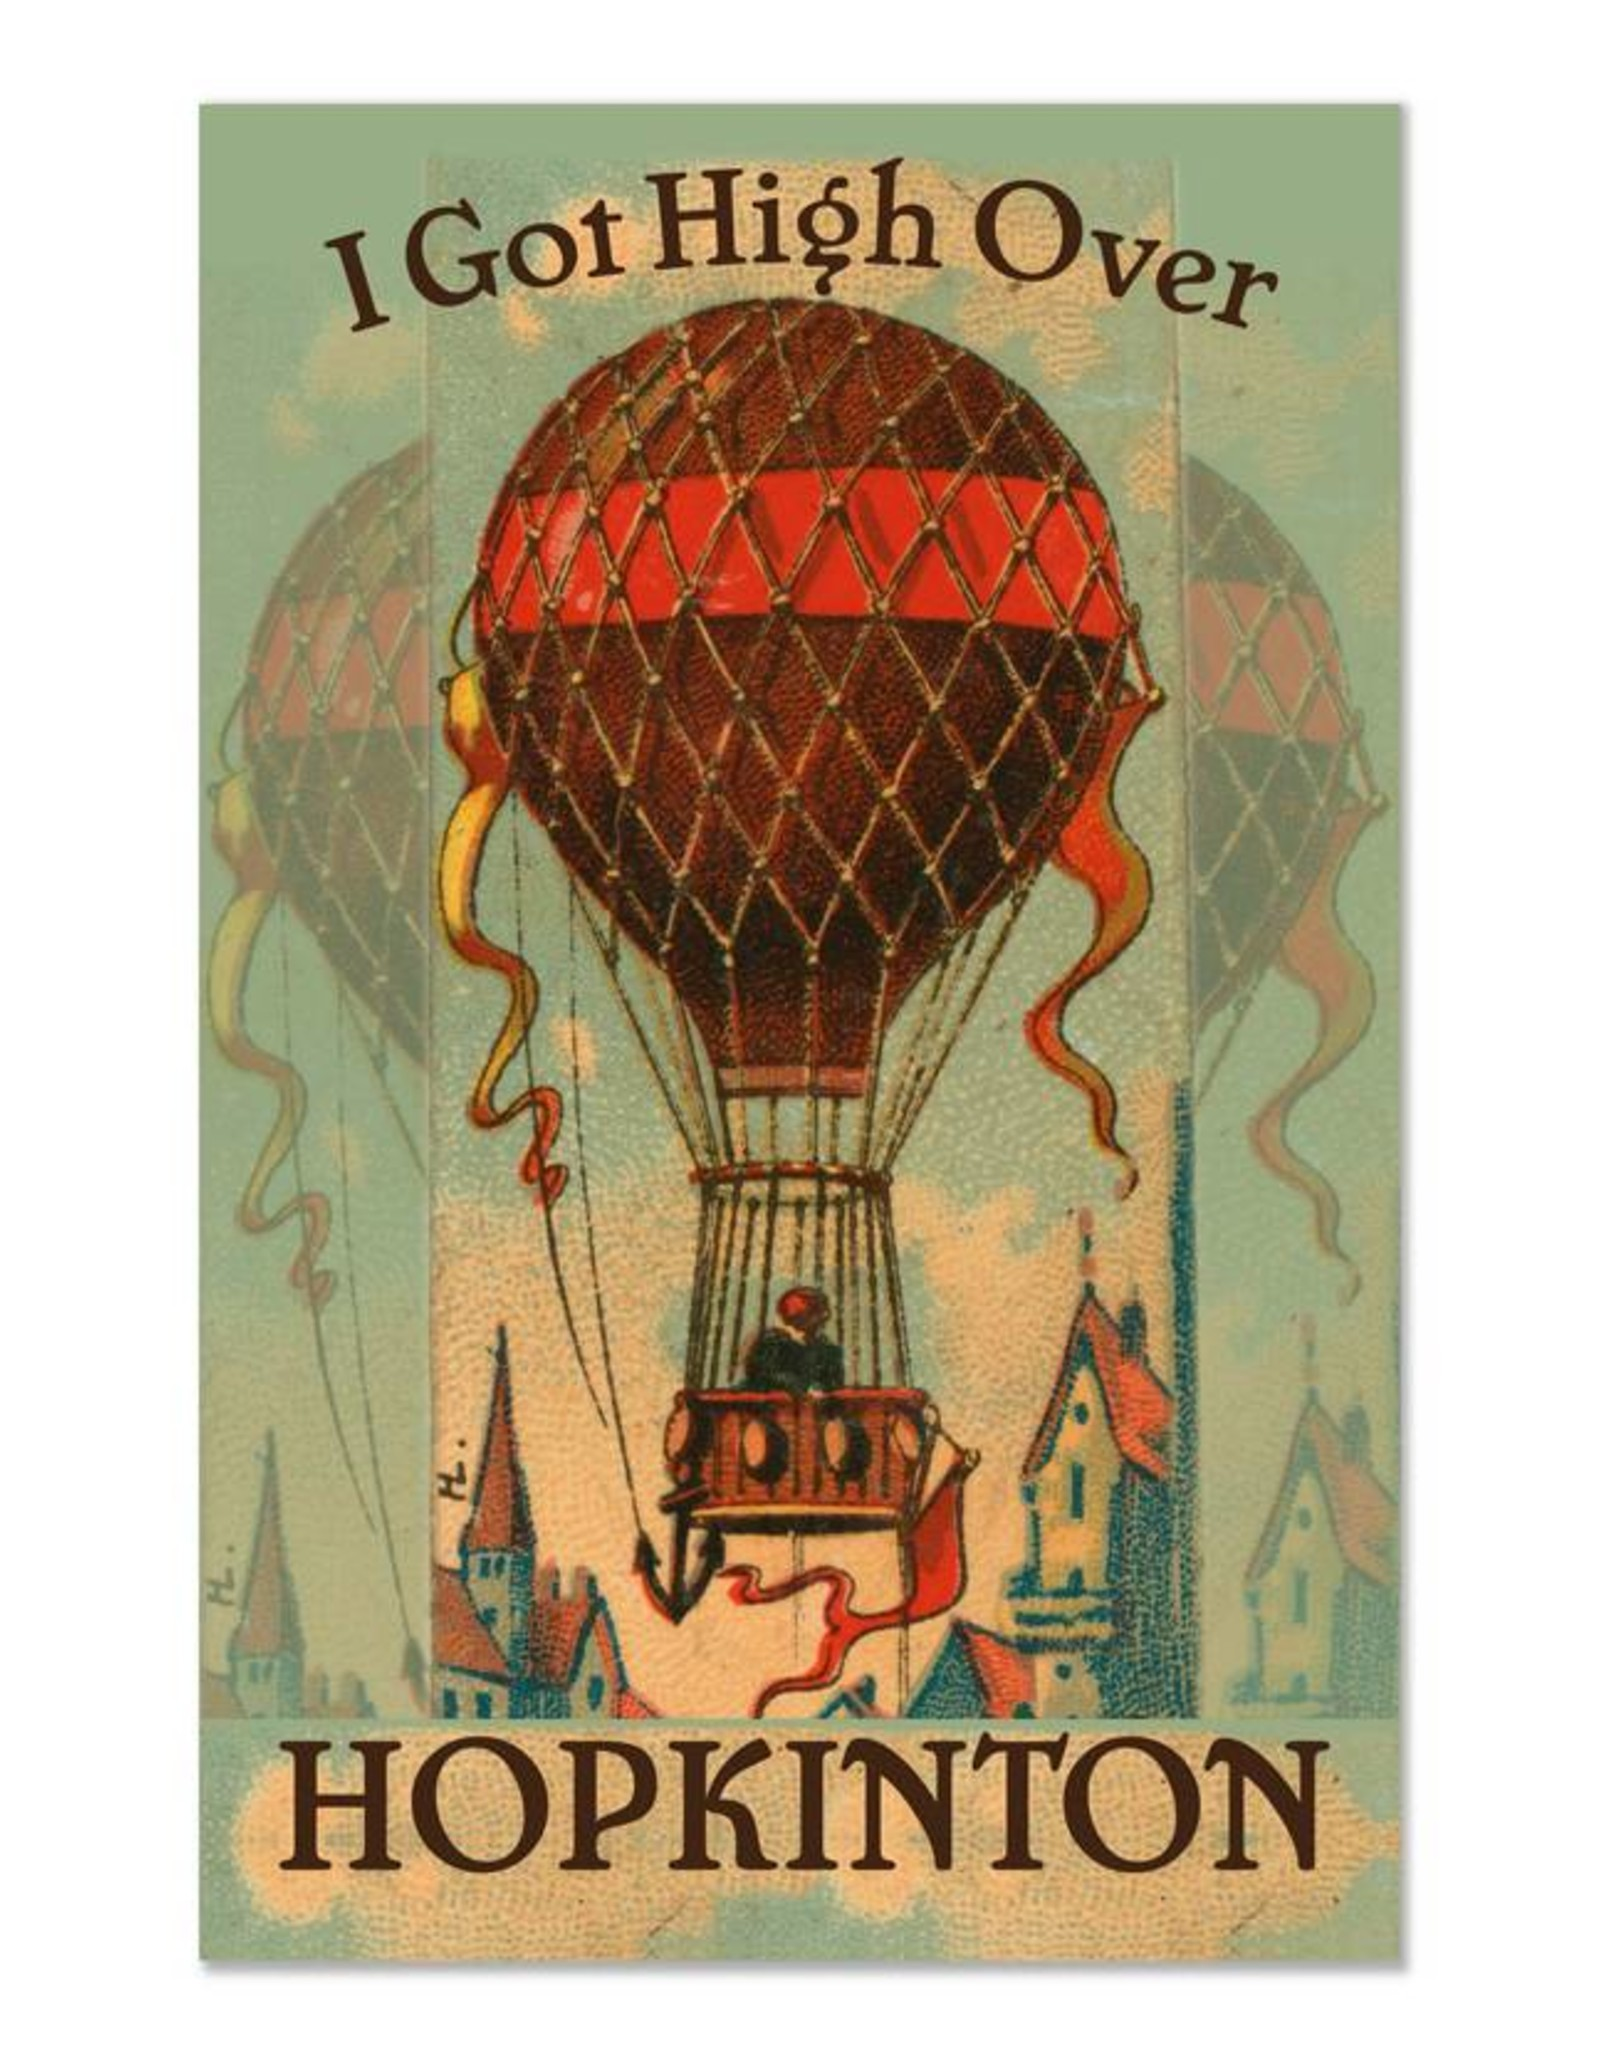 Frog & Toad Design High Over Hopkinton Print